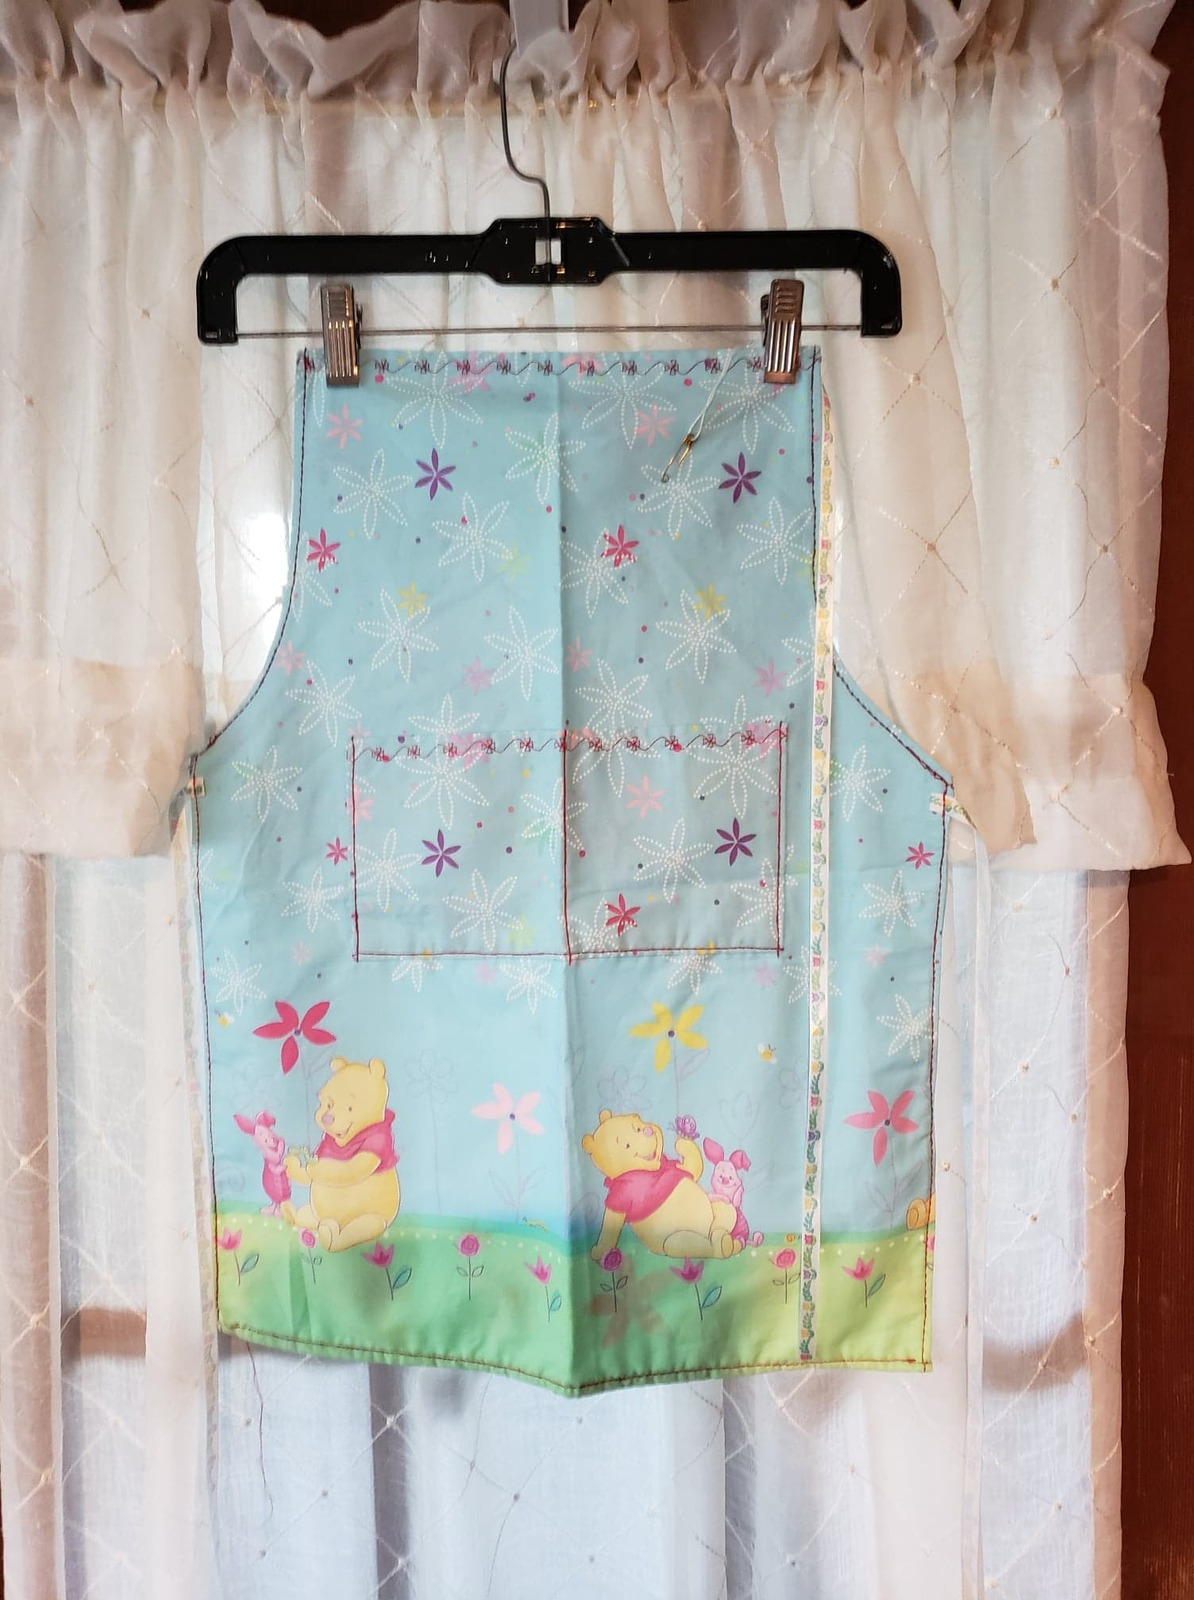 Child/Youth Lined Cotton Apron with pockets - Whinnie the Pooh! Med (5T - 6T) - $12.99